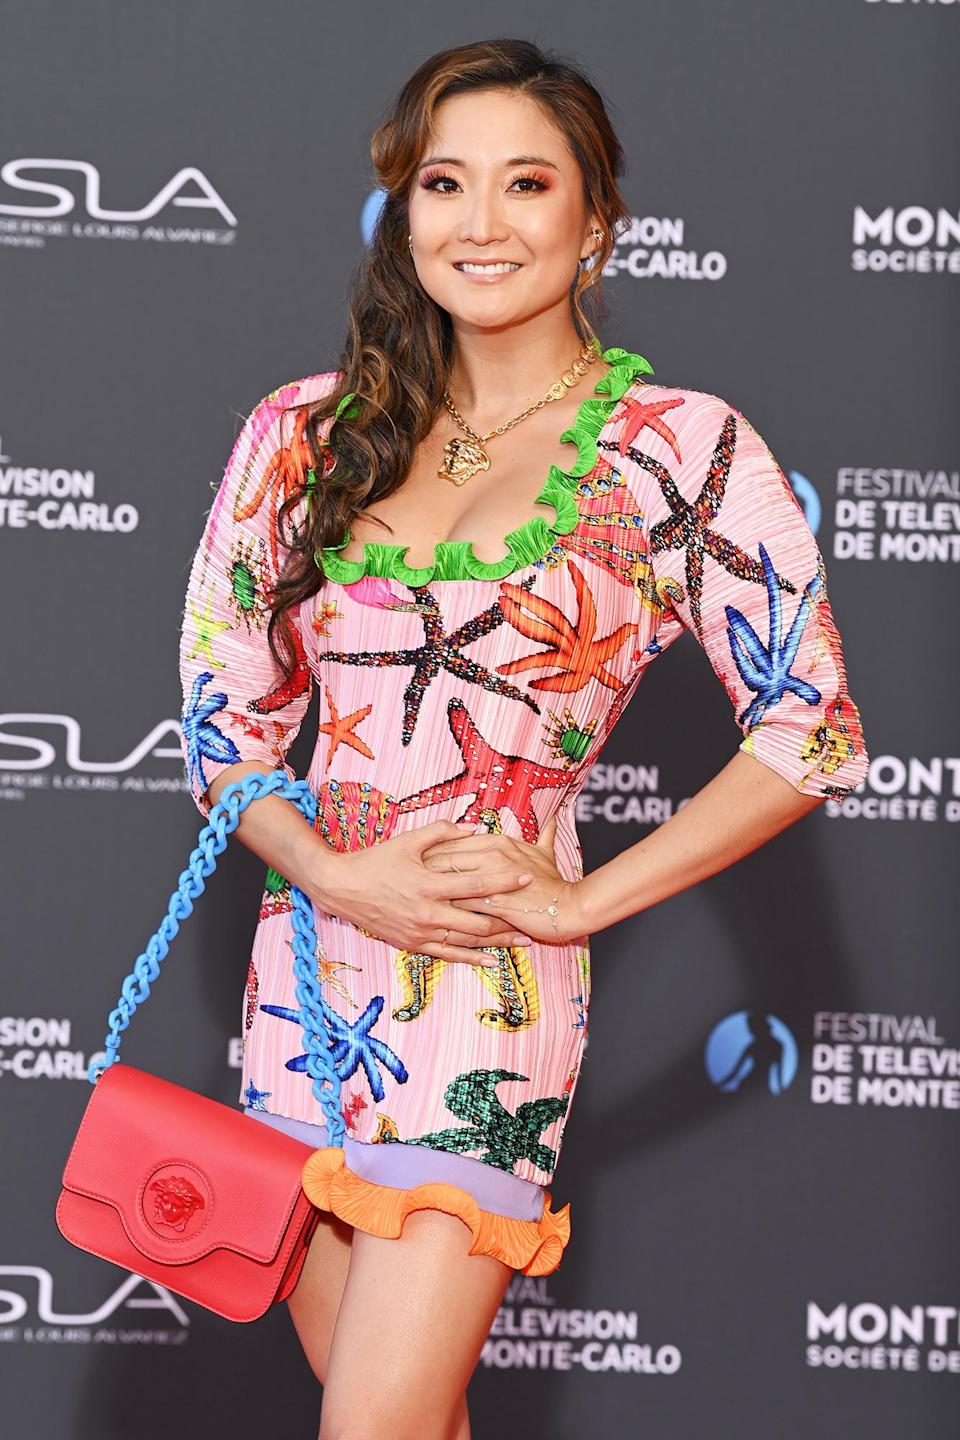 <p><em>Emily in Paris</em> star Ashley Park looks ready for summer while hitting the red carpet at the Monte-Carlo Television Festival in Monaco on June 18.</p>